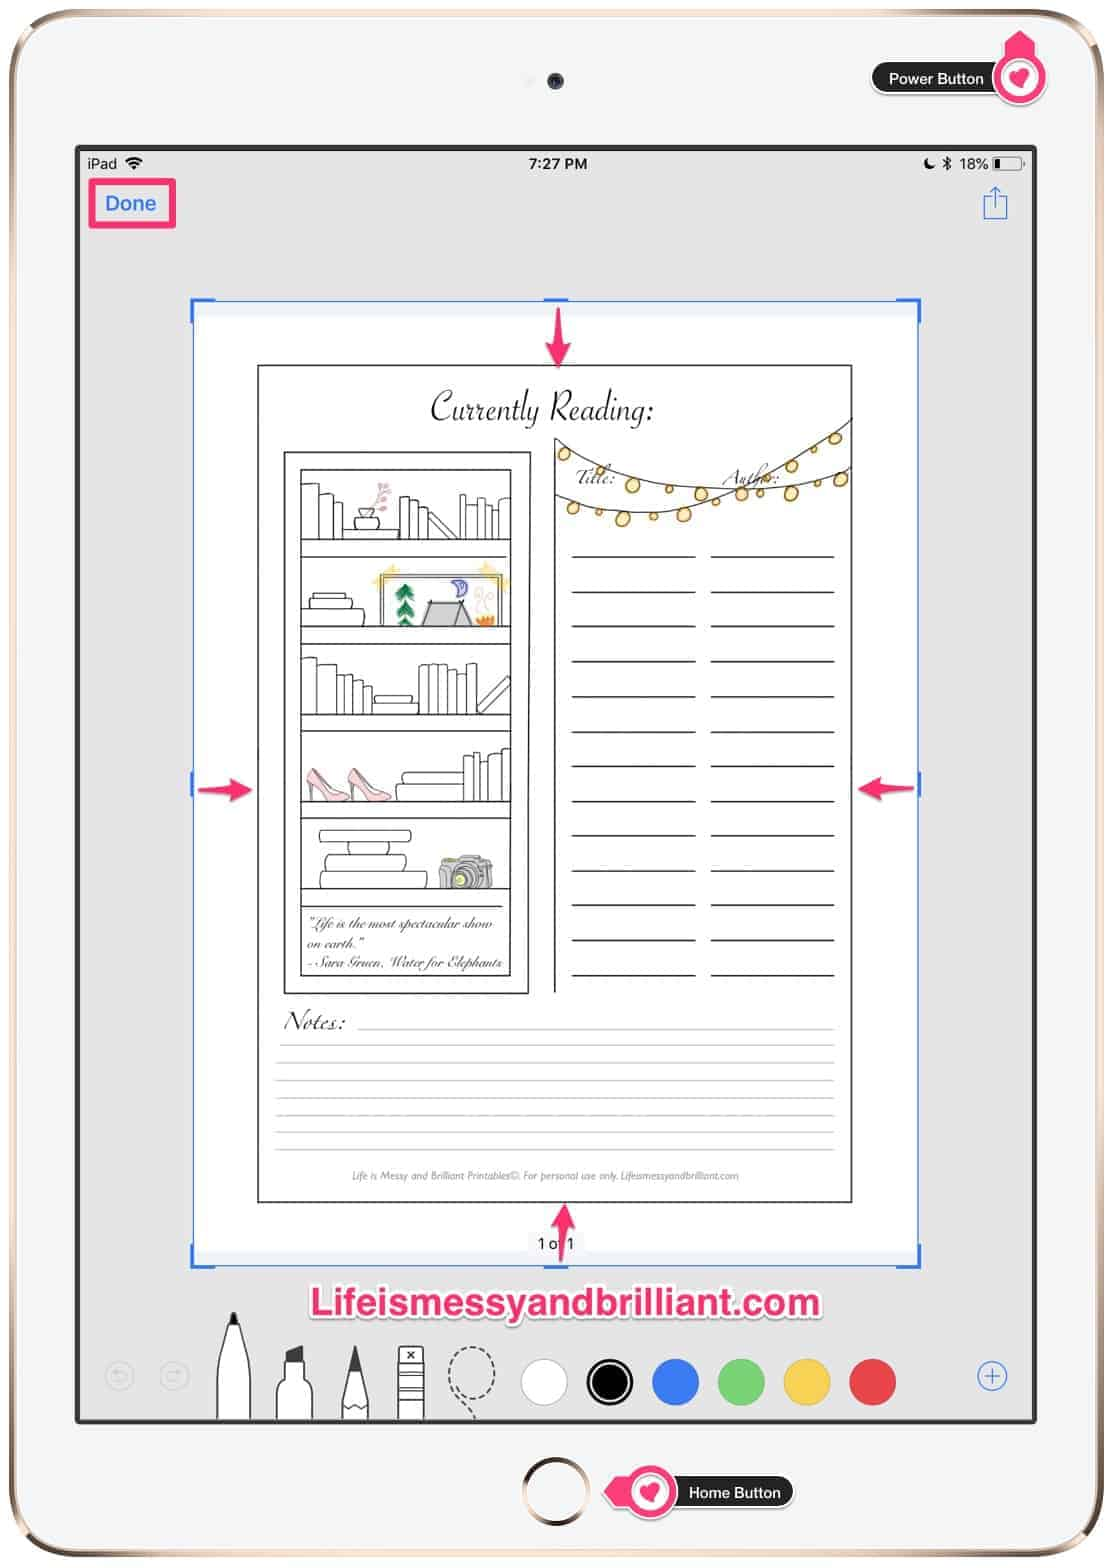 How to Decorate a Digital Planner in GoodNotes